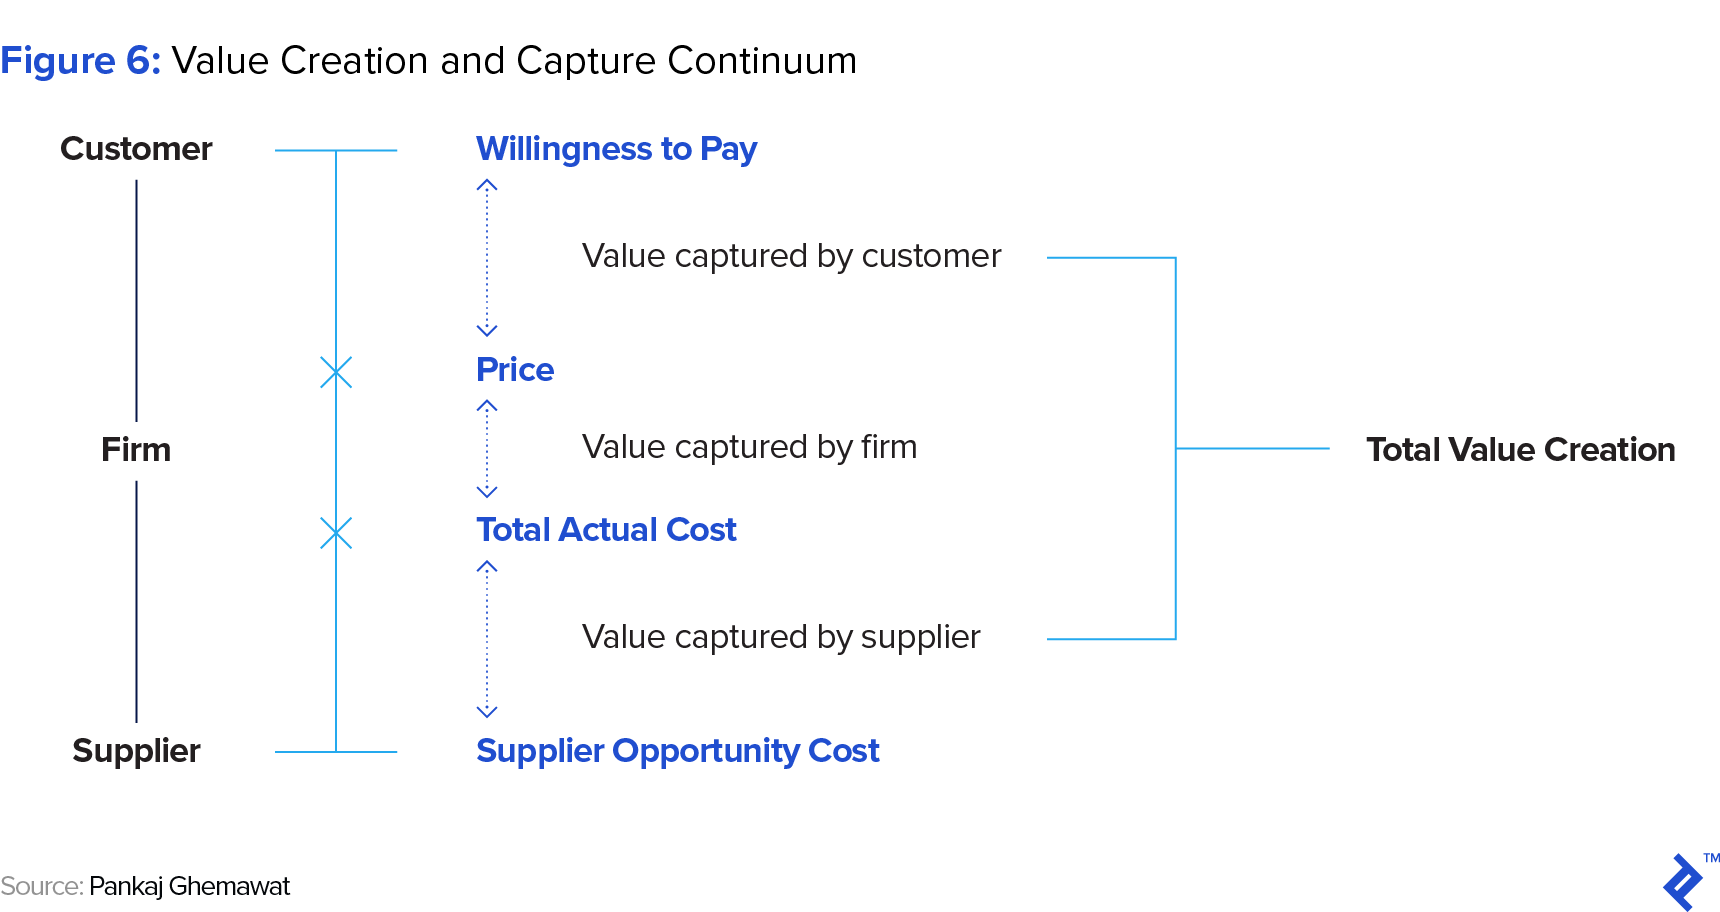 Figure 6: Value Creation and Capture Continuum